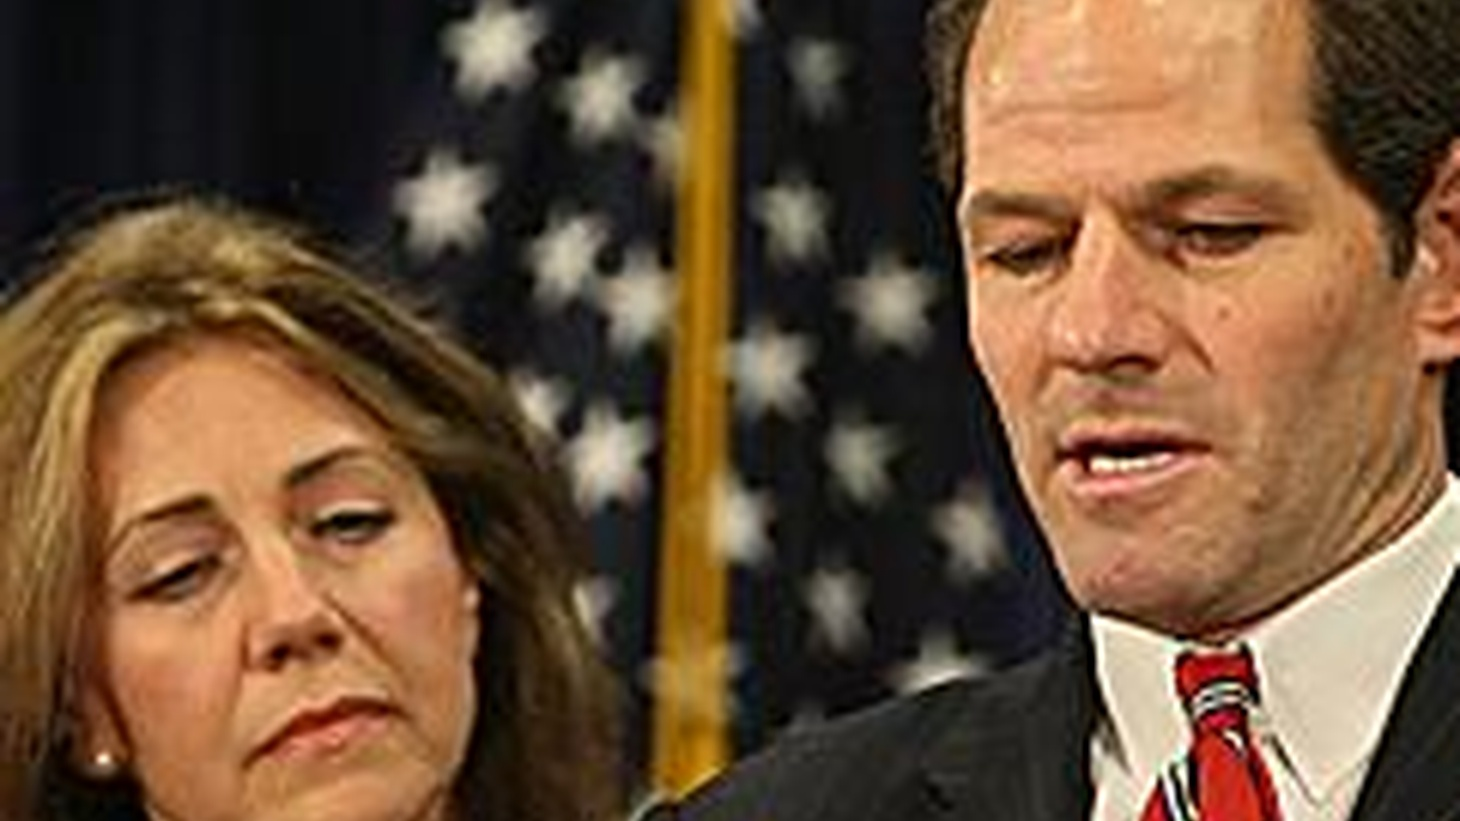 Since yesterday's brief public apology, New York Governor Elliot Spitzer has been holed up in his 5th Avenue apartment. Will he resign or face impeachment? Then, will UN sanctions persuade Iran to slow down its nuclear program? Is Iran more interested in Iraq? Has Iran's long-running confrontation with the US turned into a new Cold War?